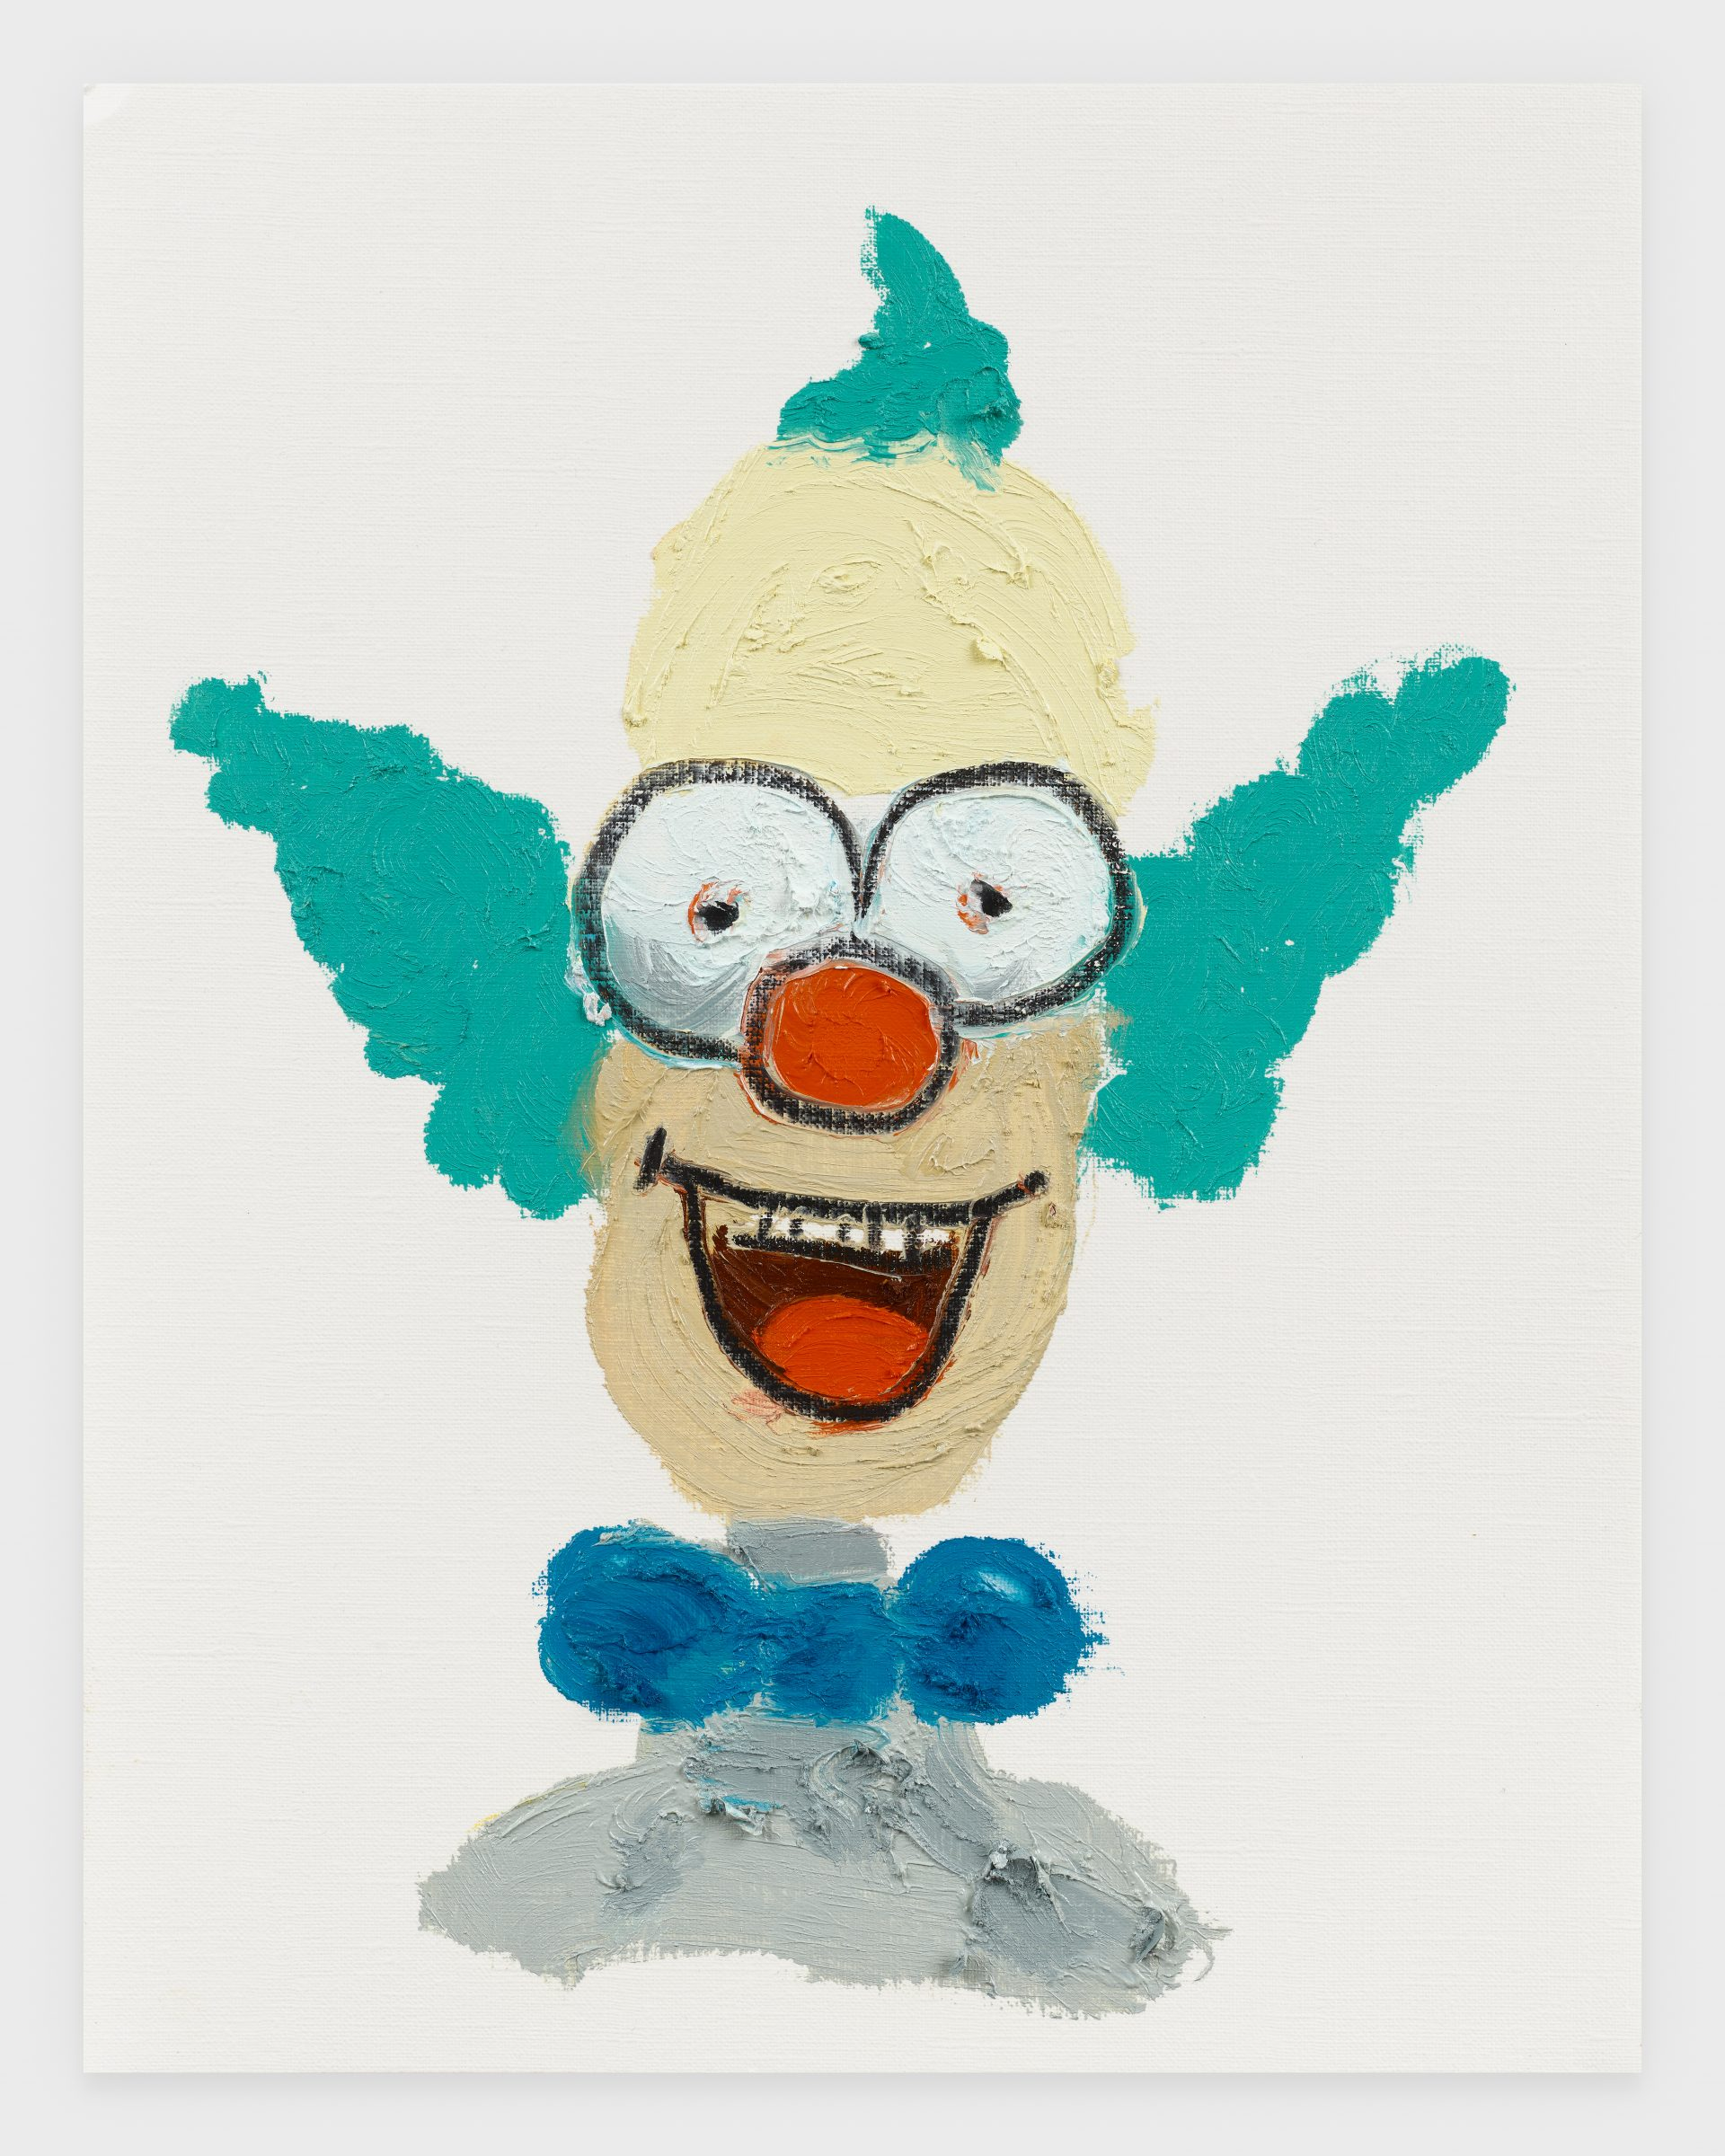 Krusty, 2020, Oil stick on archival paper, 11 x 14 inches